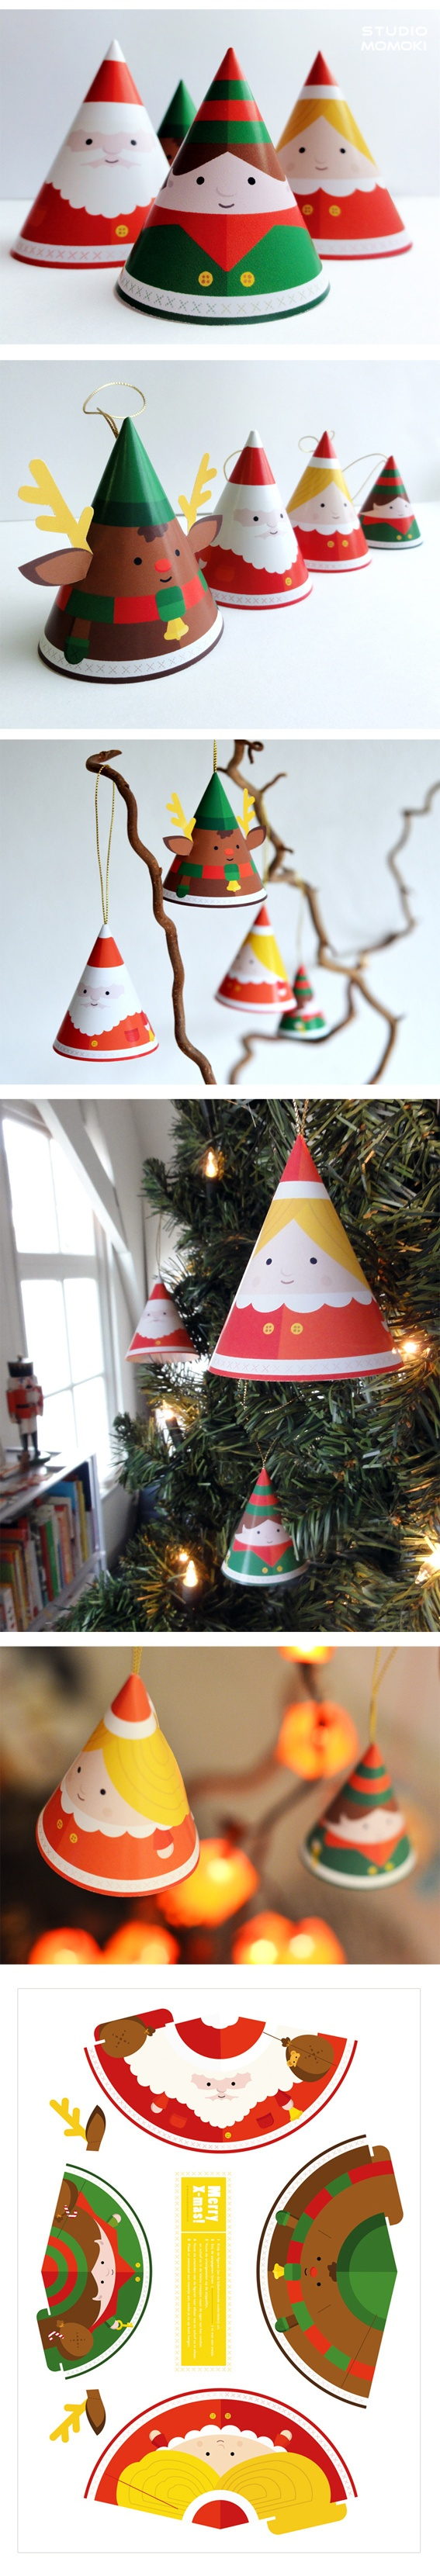 Make Your Own Papertoy Christmas Decoration Design By